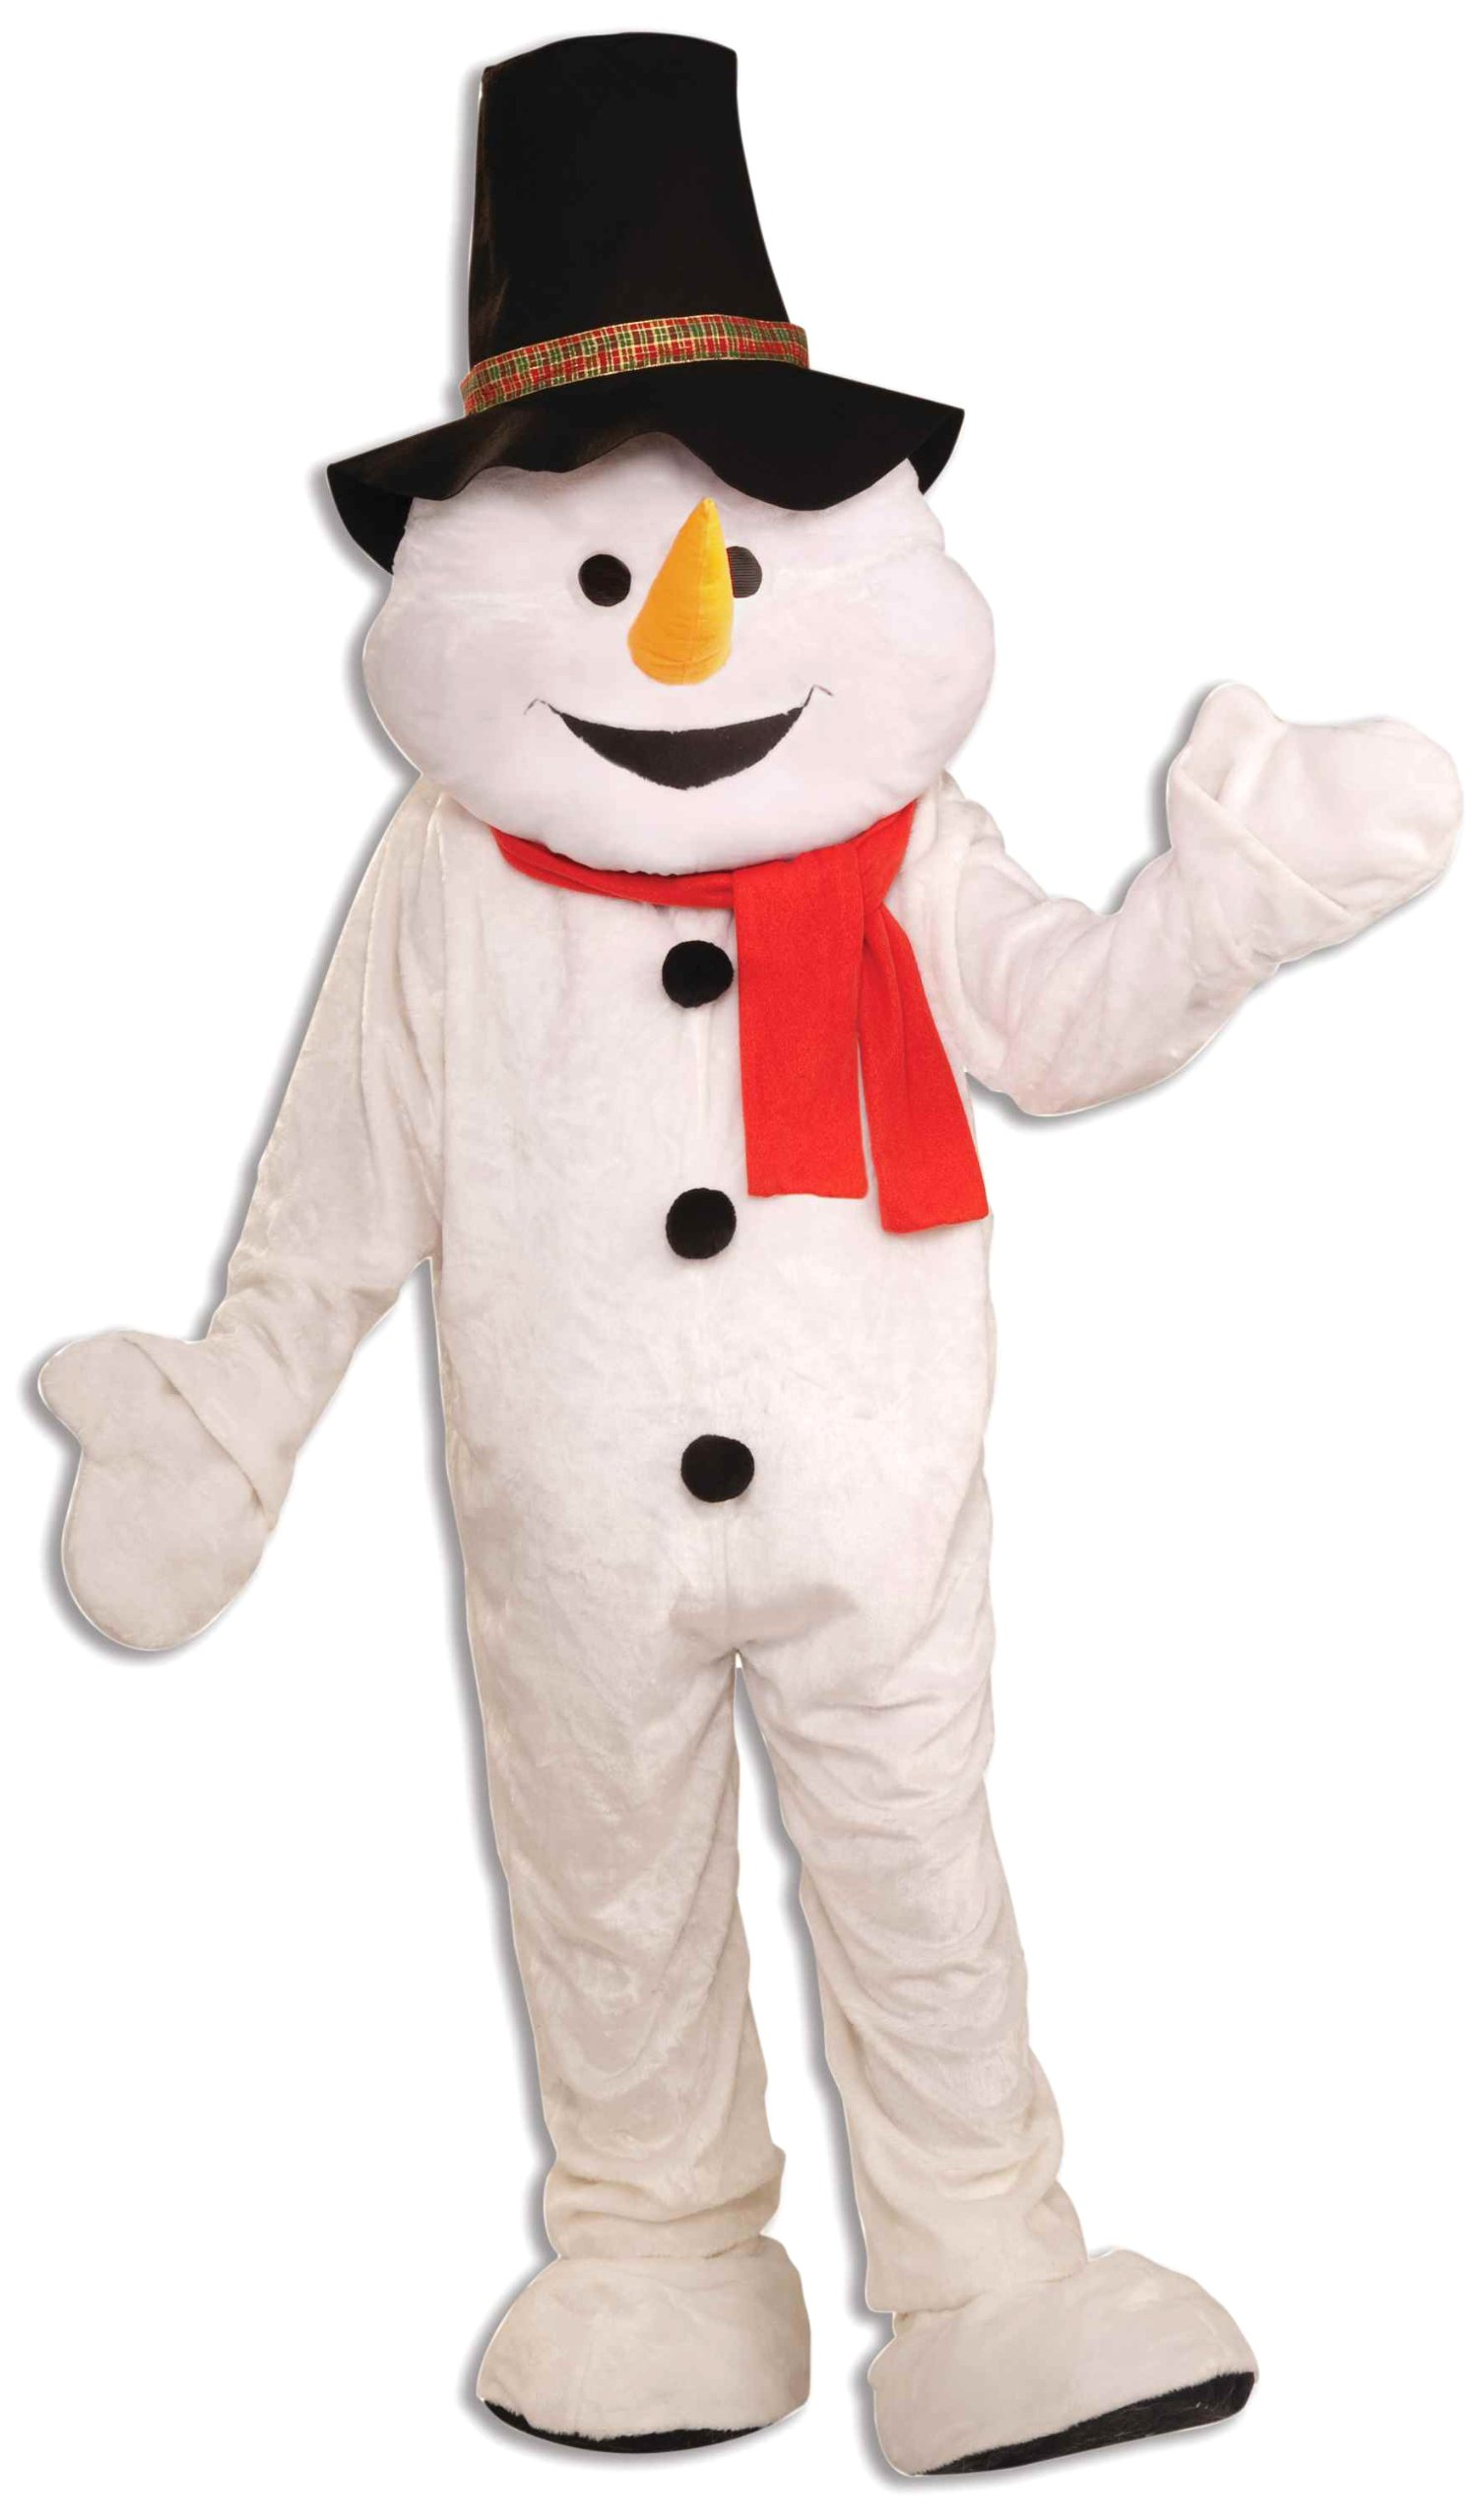 Forum Novelties Men's Plush Snowman Mascot Adult Costume, Multicolor, Standard